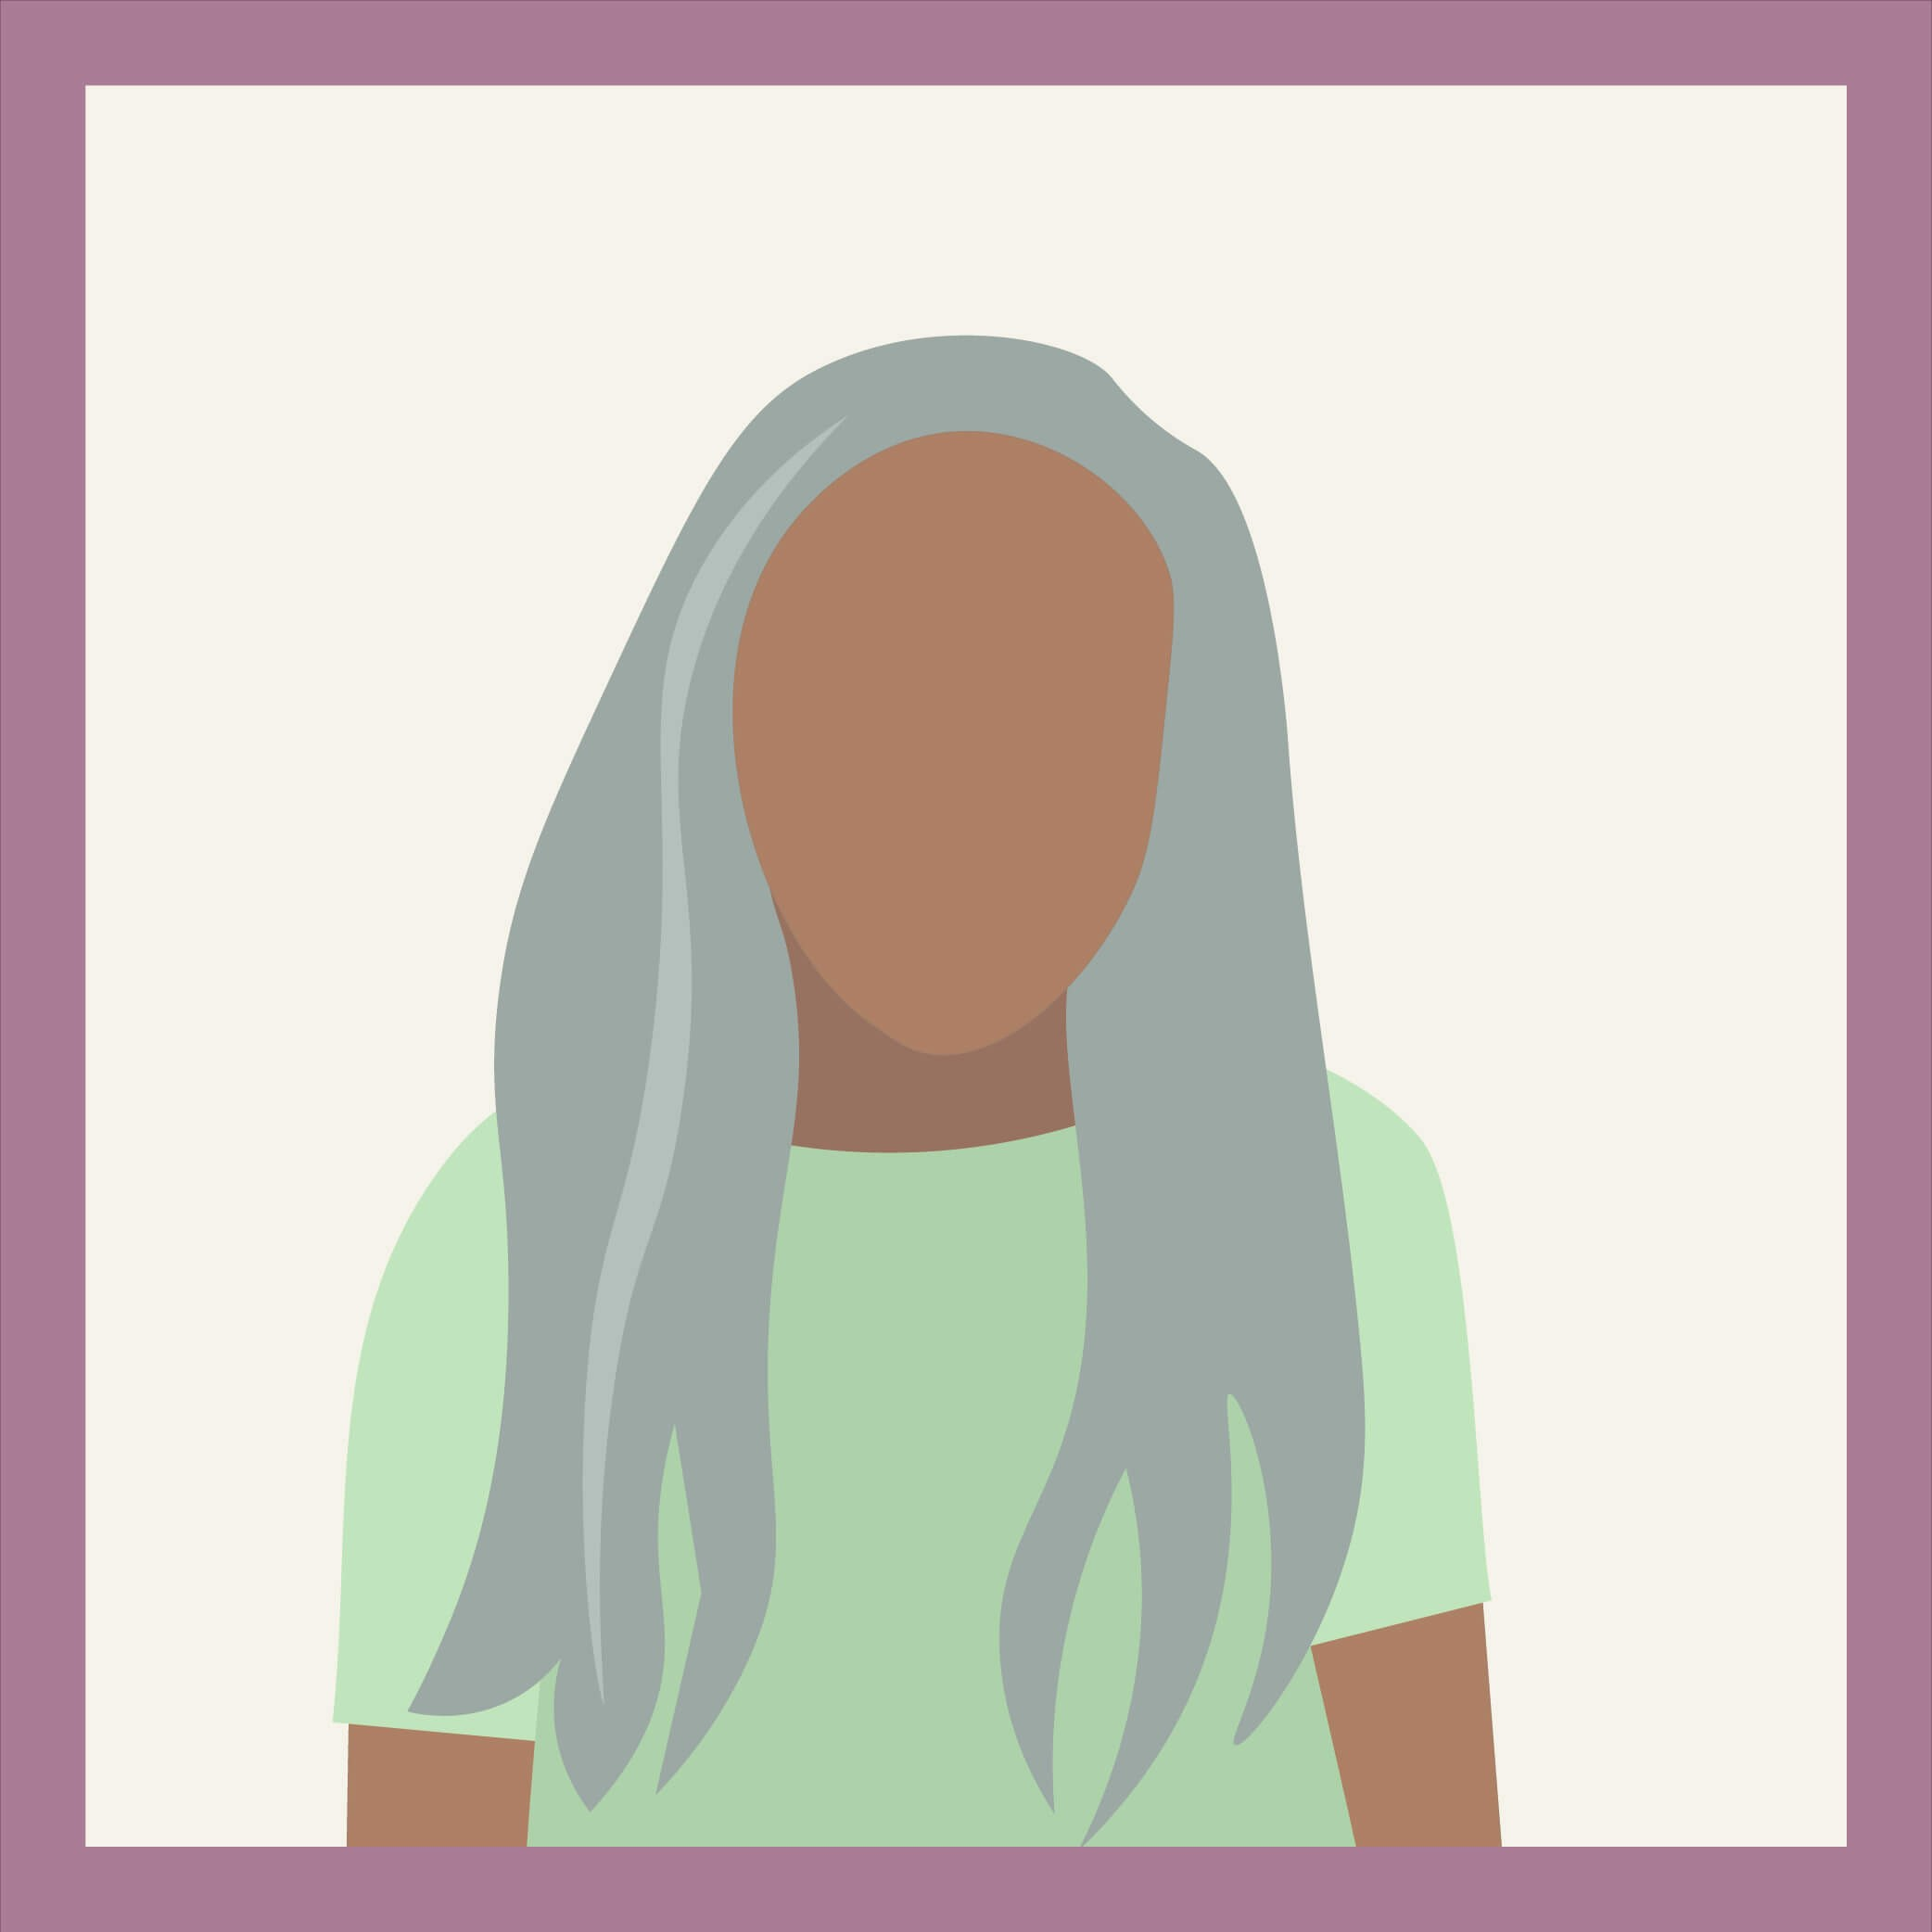 an illustration of a woman with long, completely gray hair